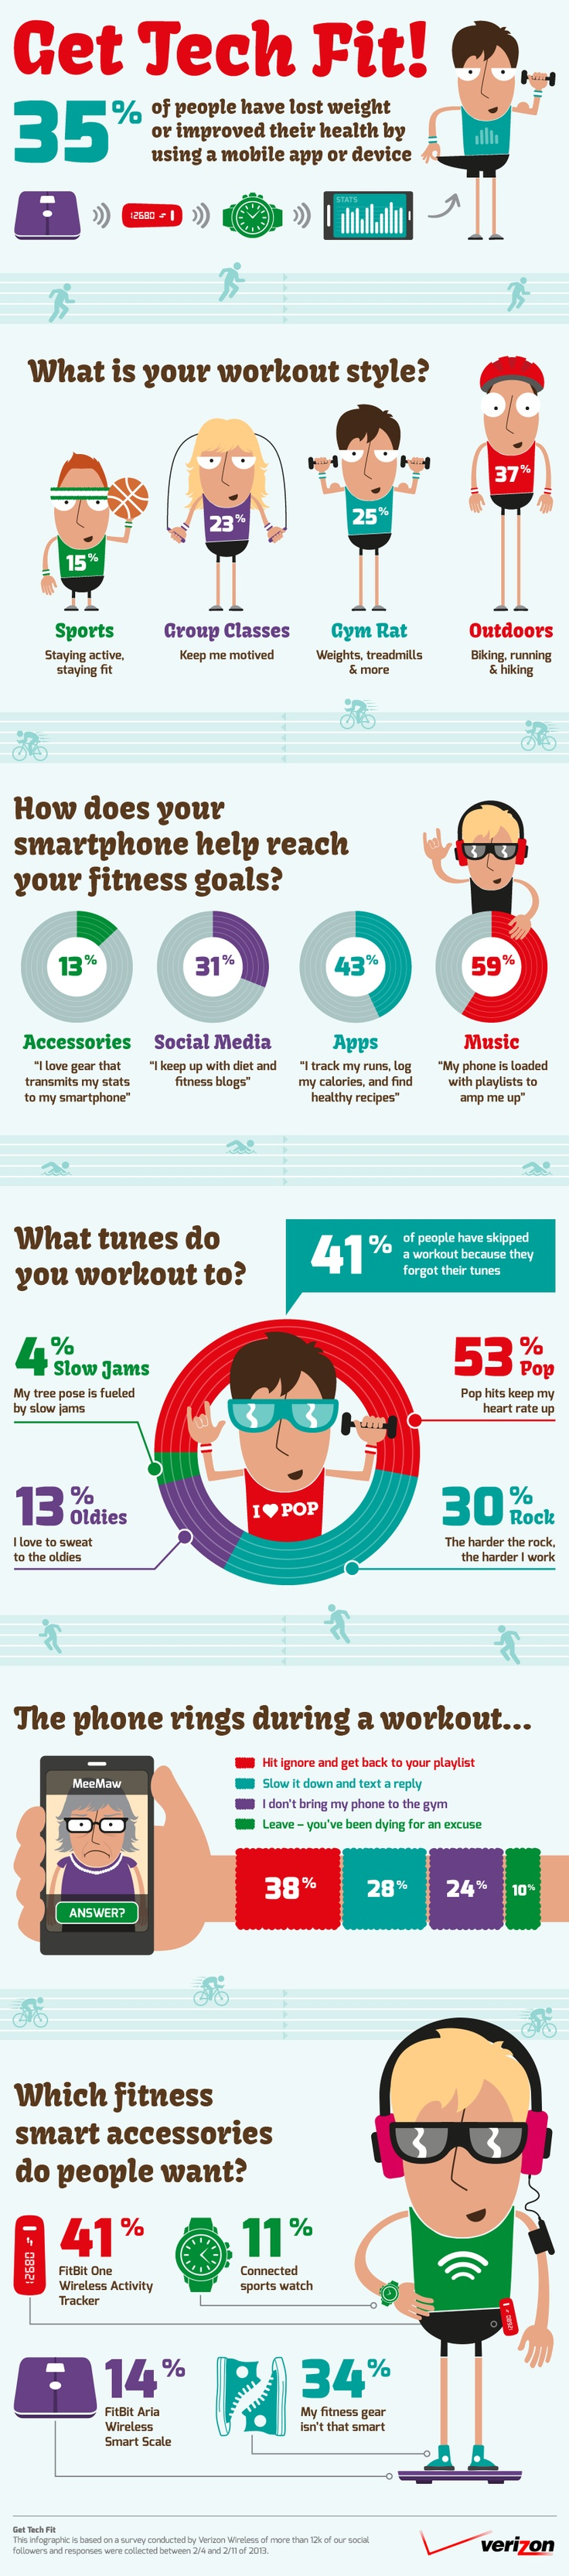 Gym rats unite: 35% have improved their health with a fitness app or accessory. What's your workout style? #fitness #springbreak #workout #infographic